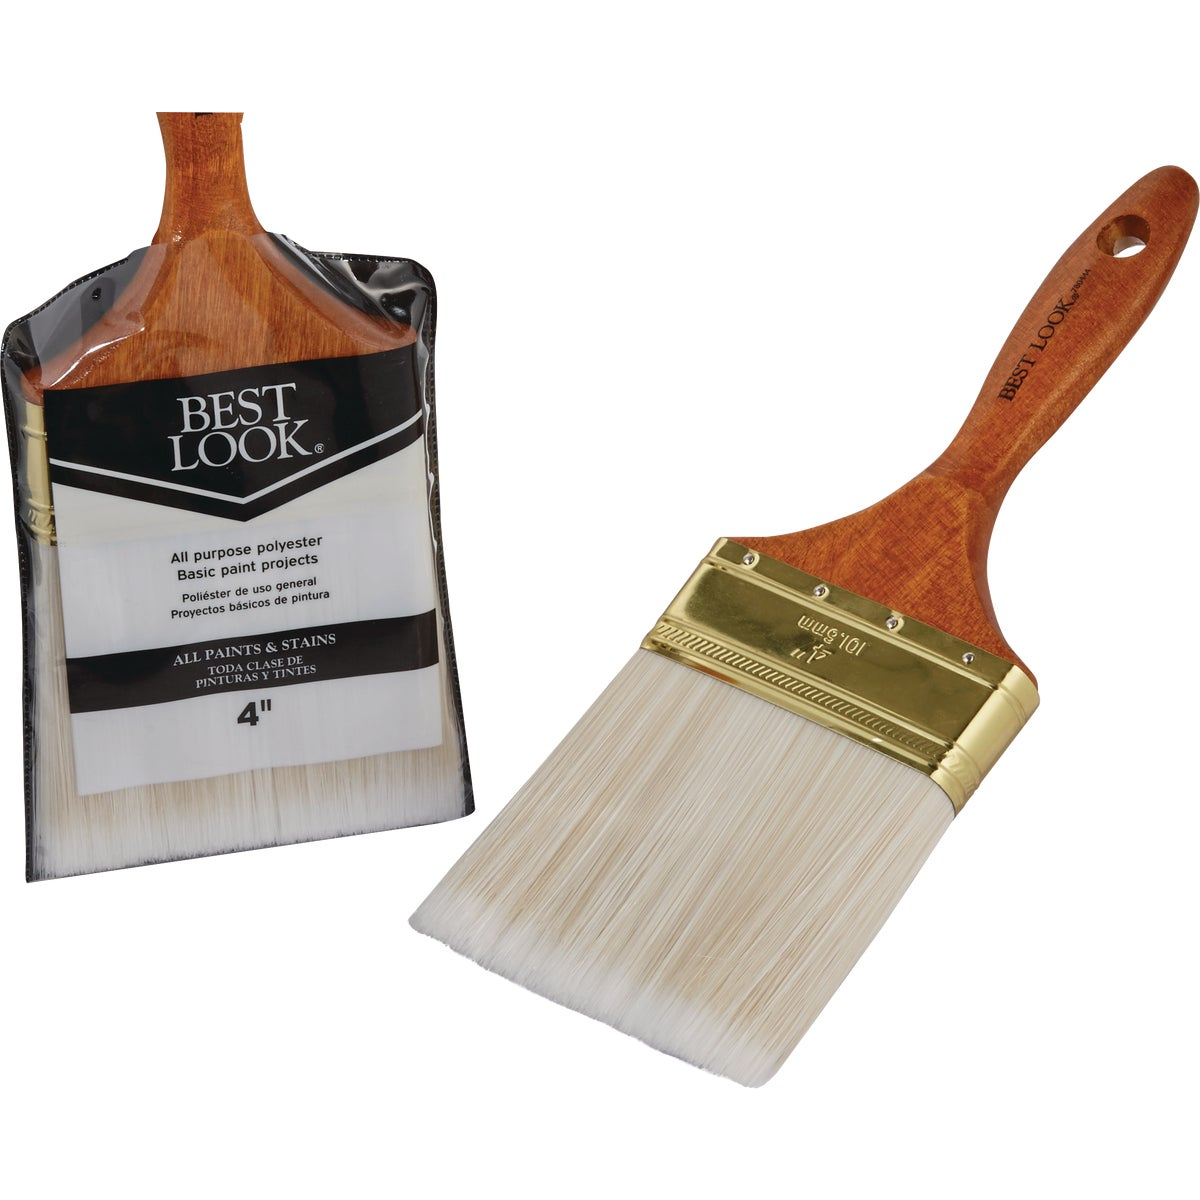 "4"" GEN-PURP WALL BRUSH - 780444 by Do it Best"